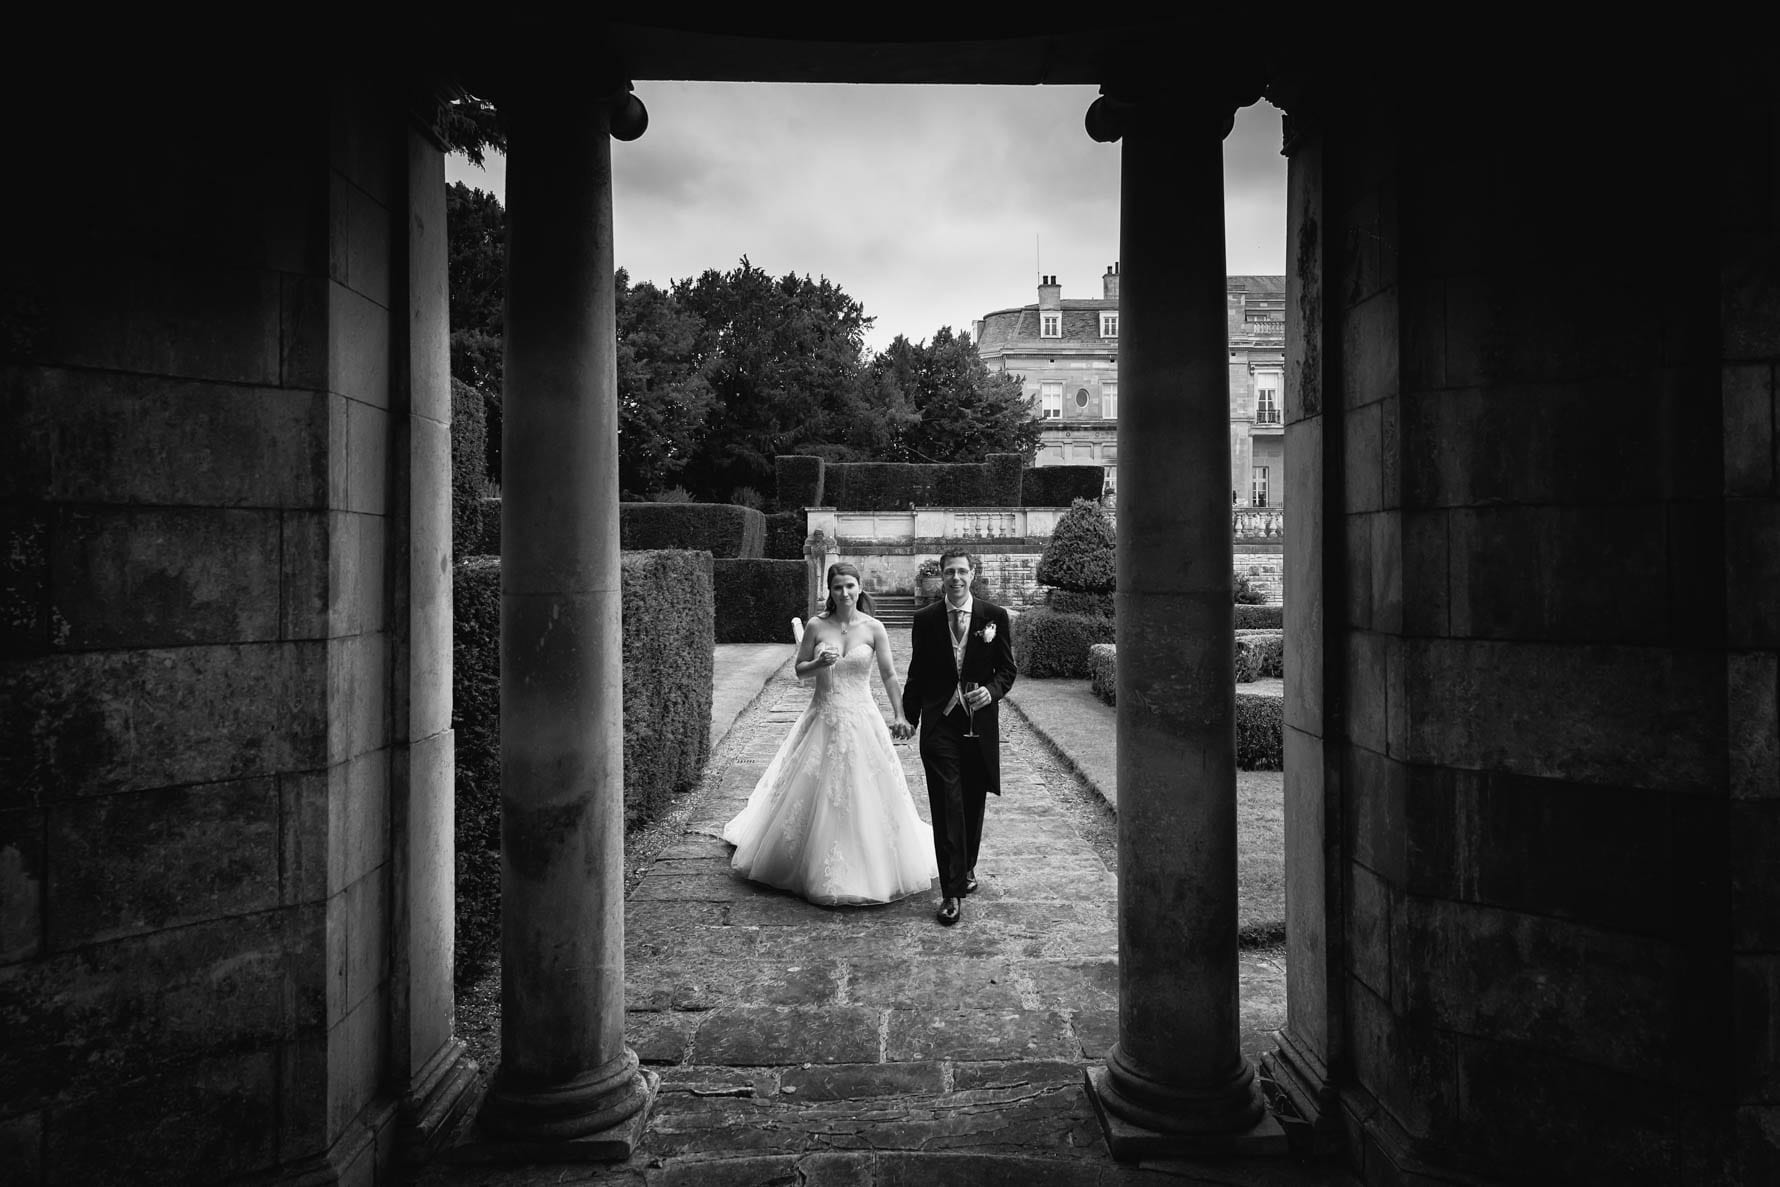 Bedfordshire wedding in the gardens of Luton Hoo Hotel